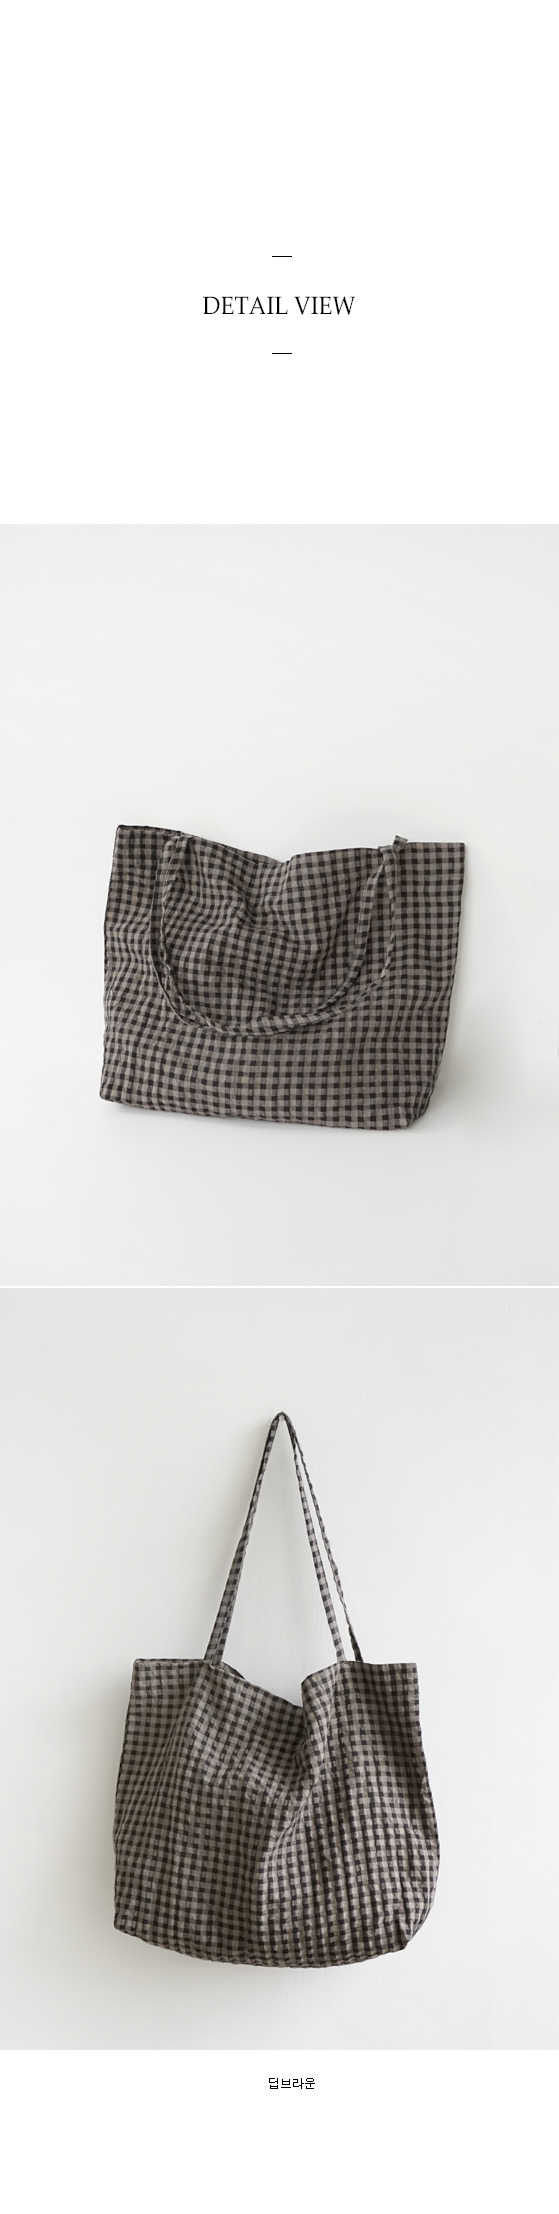 deep brown check bag